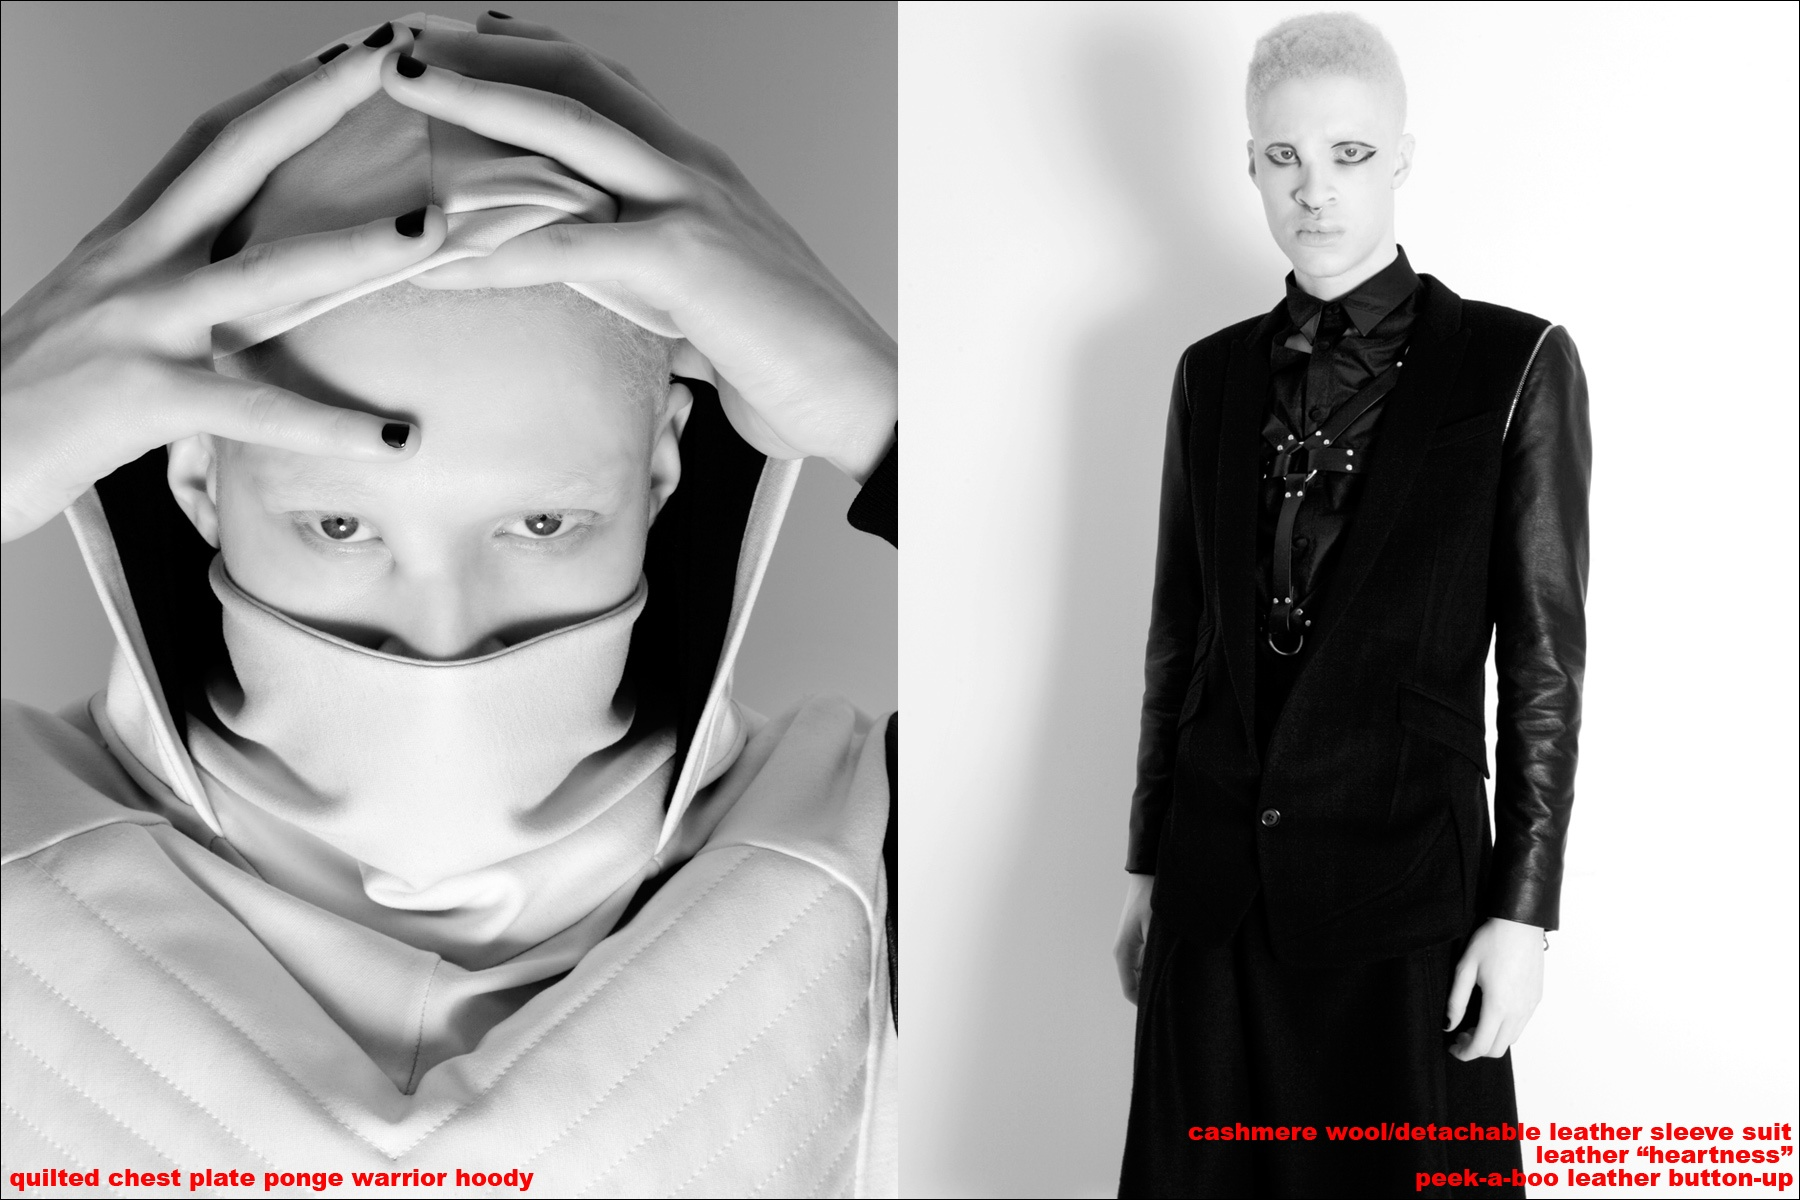 Shaun Ross modeling for Ponyboy Magazine, wearing Ashton Michael AW 2013 clothing. Photographed by Alexander Thompson.